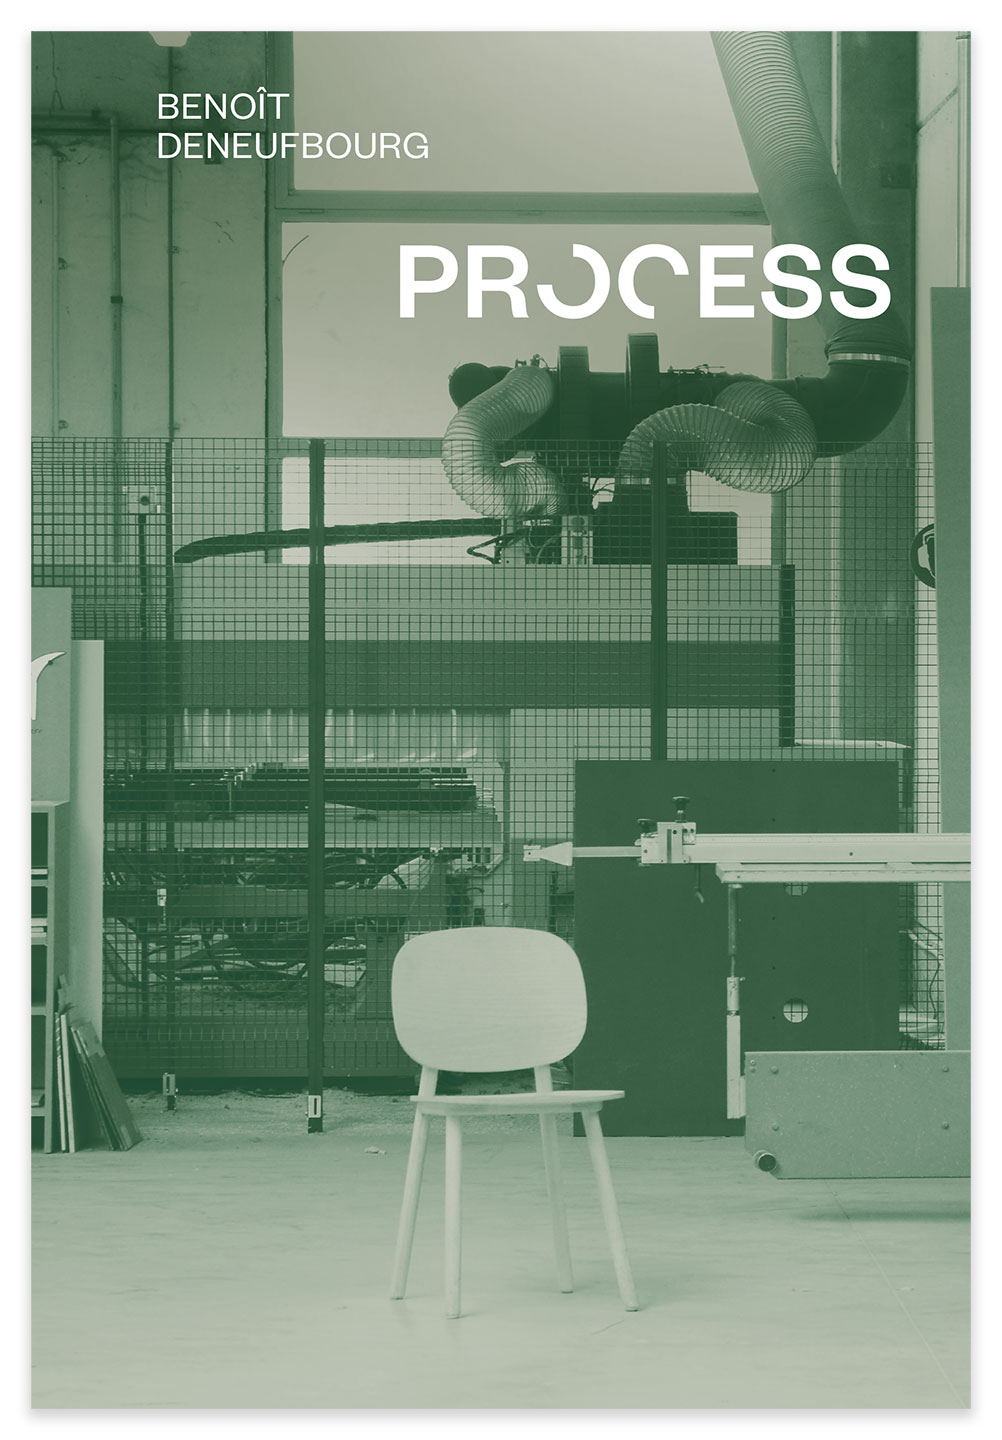 Cover of the book about the creative process of Benoit Deneufbourg